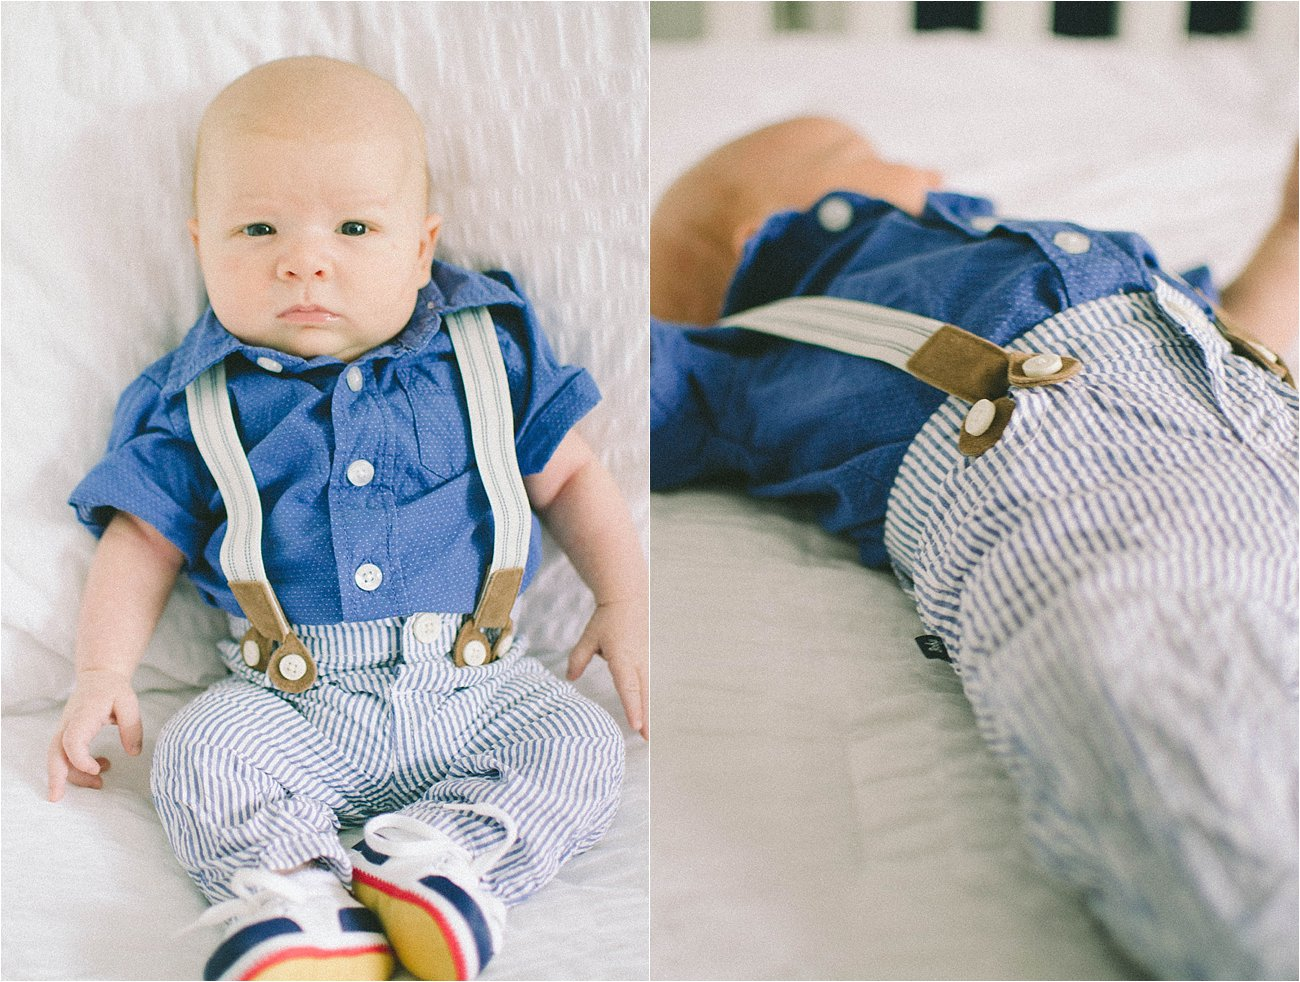 Osh Kosh Kids #BreakForSpring Kids and Baby Style (4)